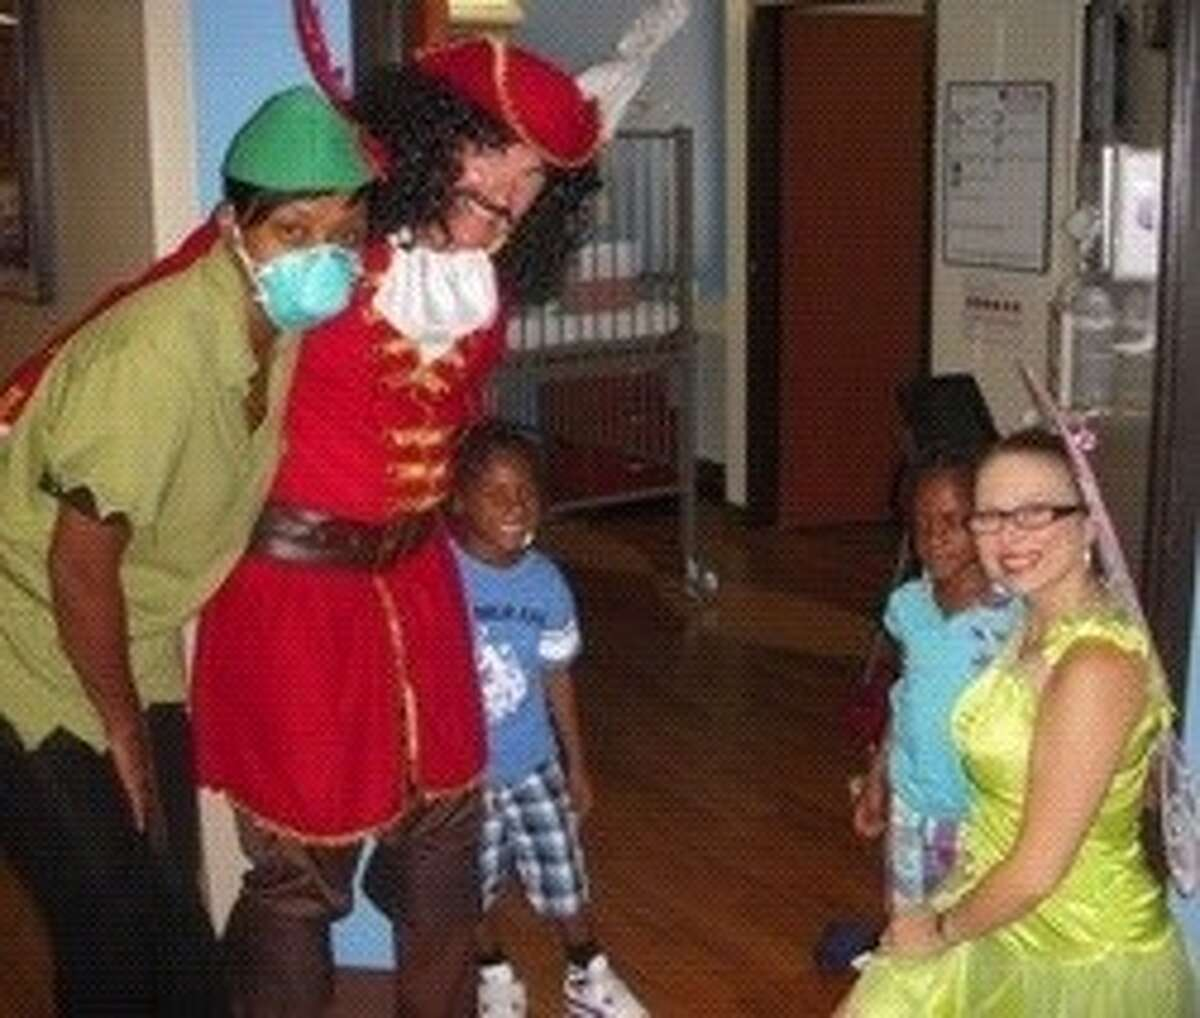 Express Employment Professionals in costume delivered decorated pumpkins to children in area hospitals for Halloween.